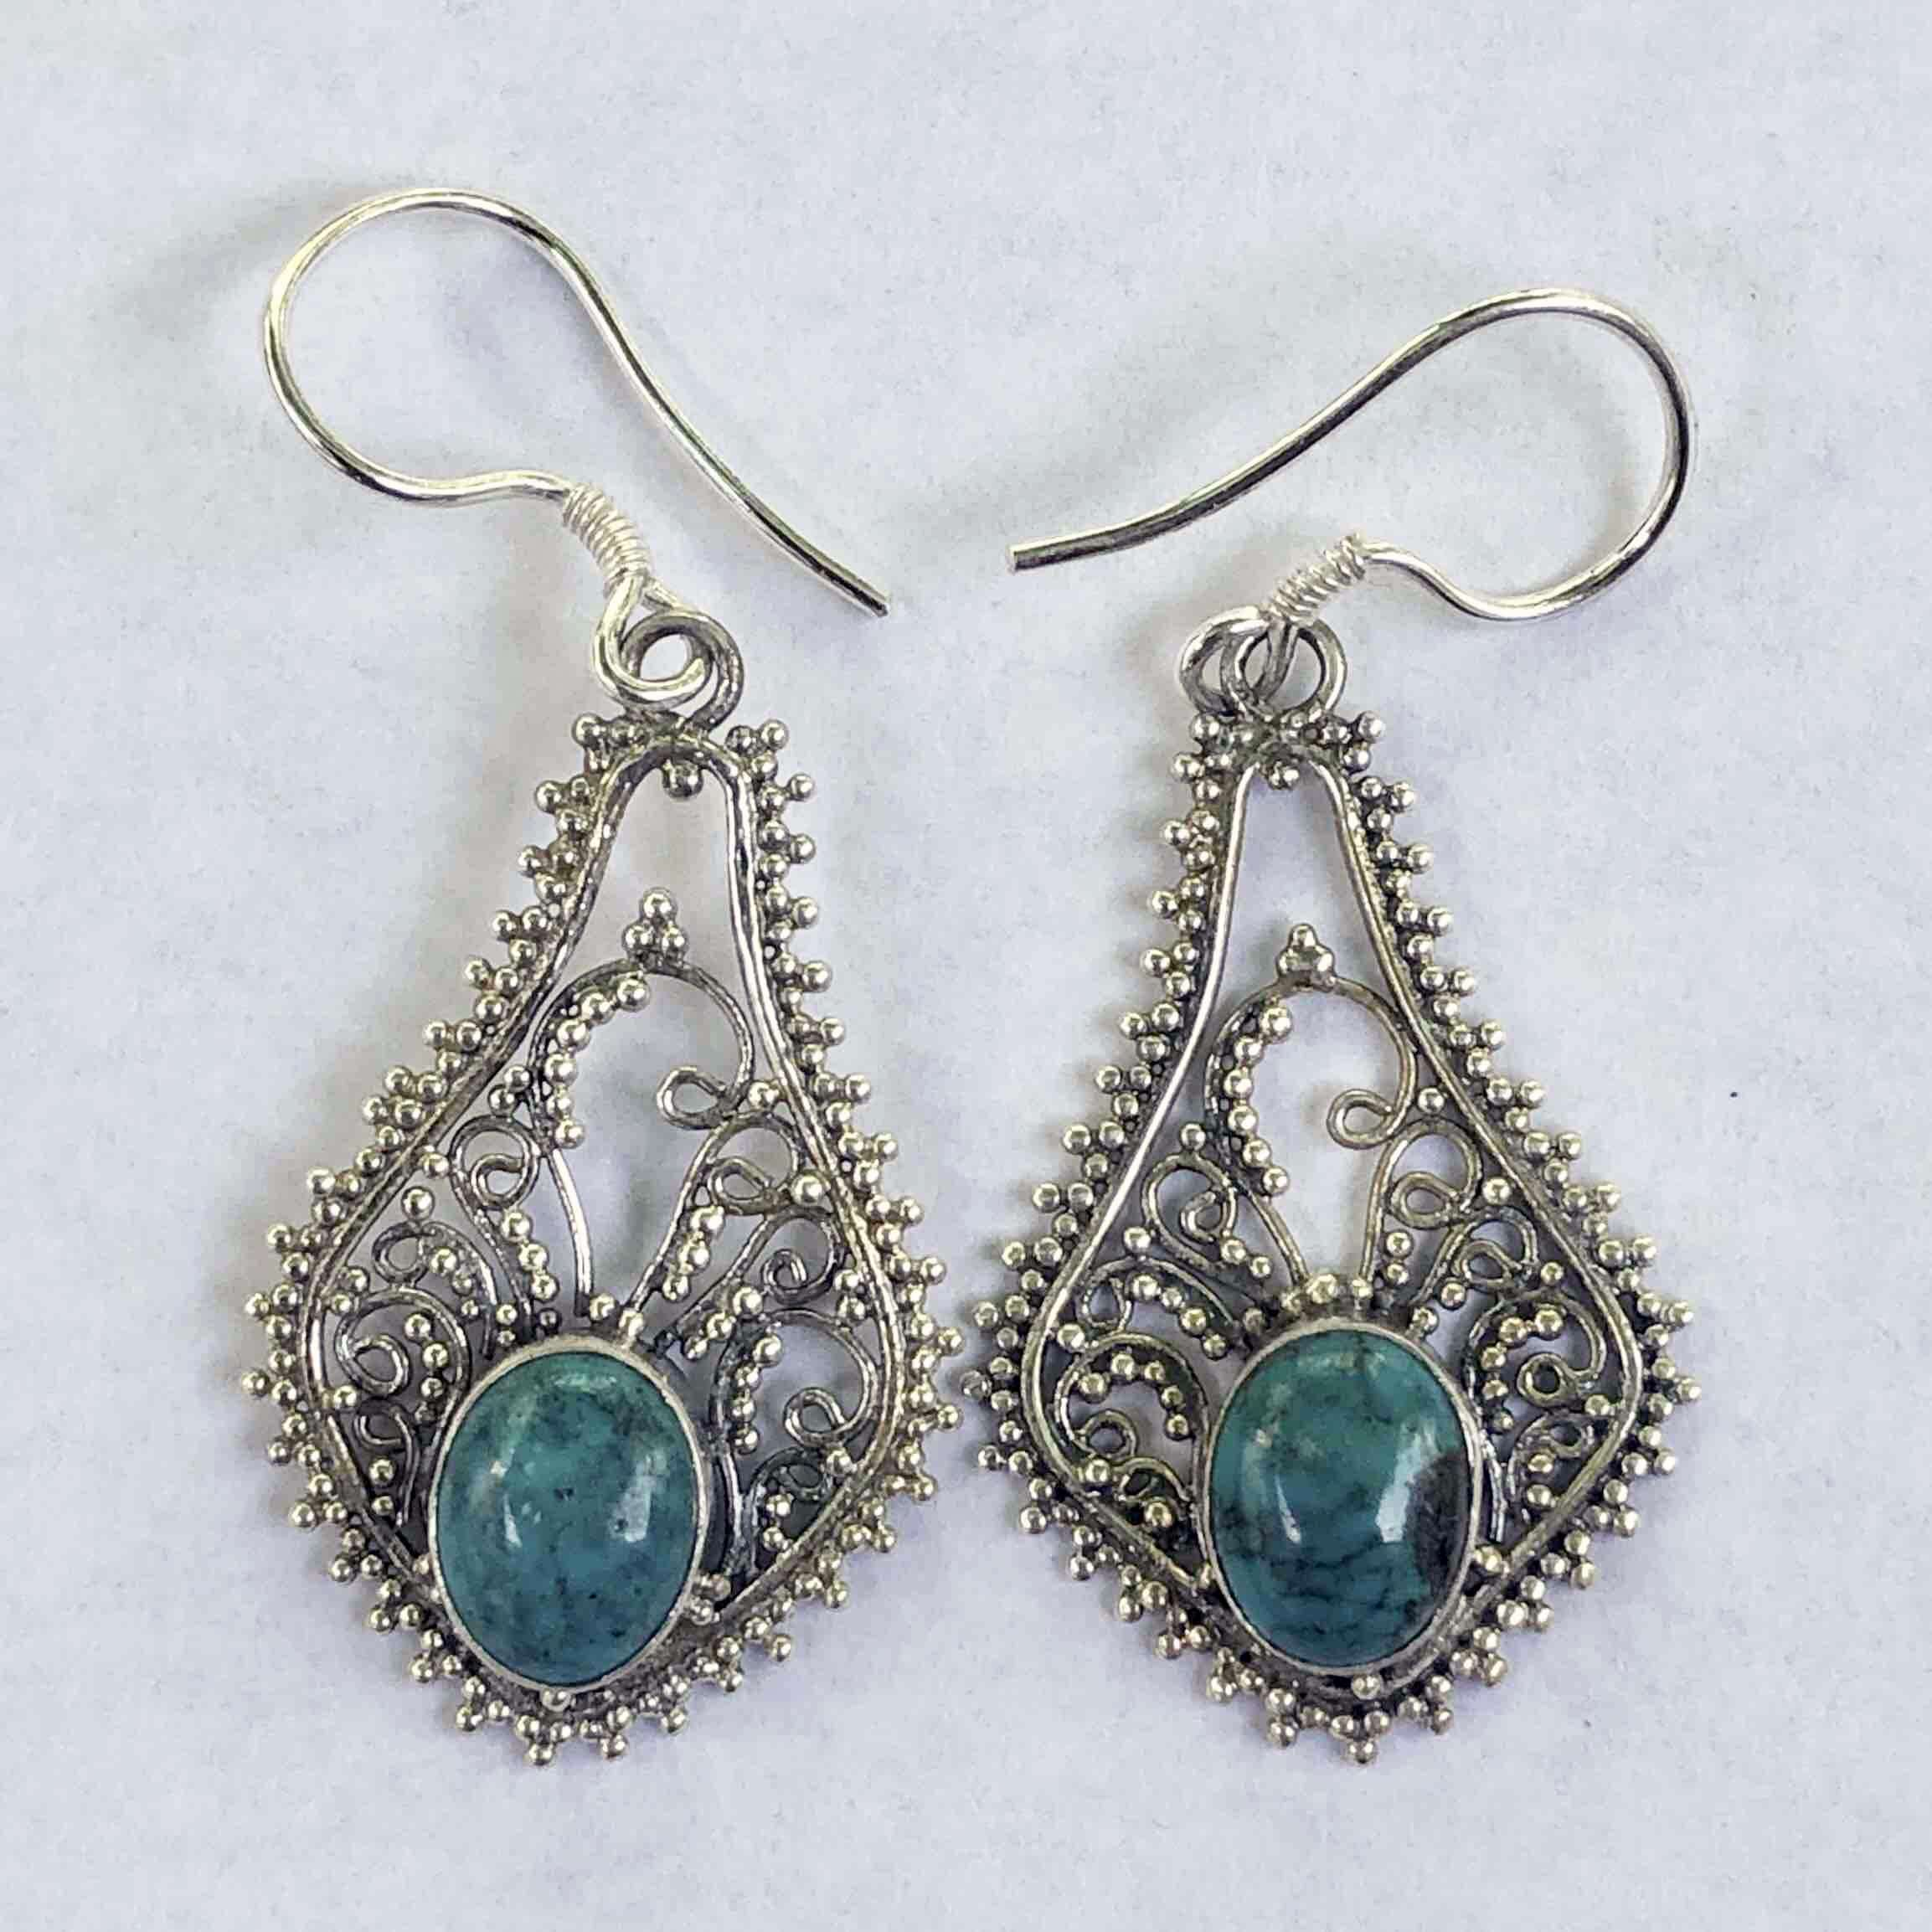 HANDMADE 925 BALI SILVER EARRINGS WITH TURQOUISE